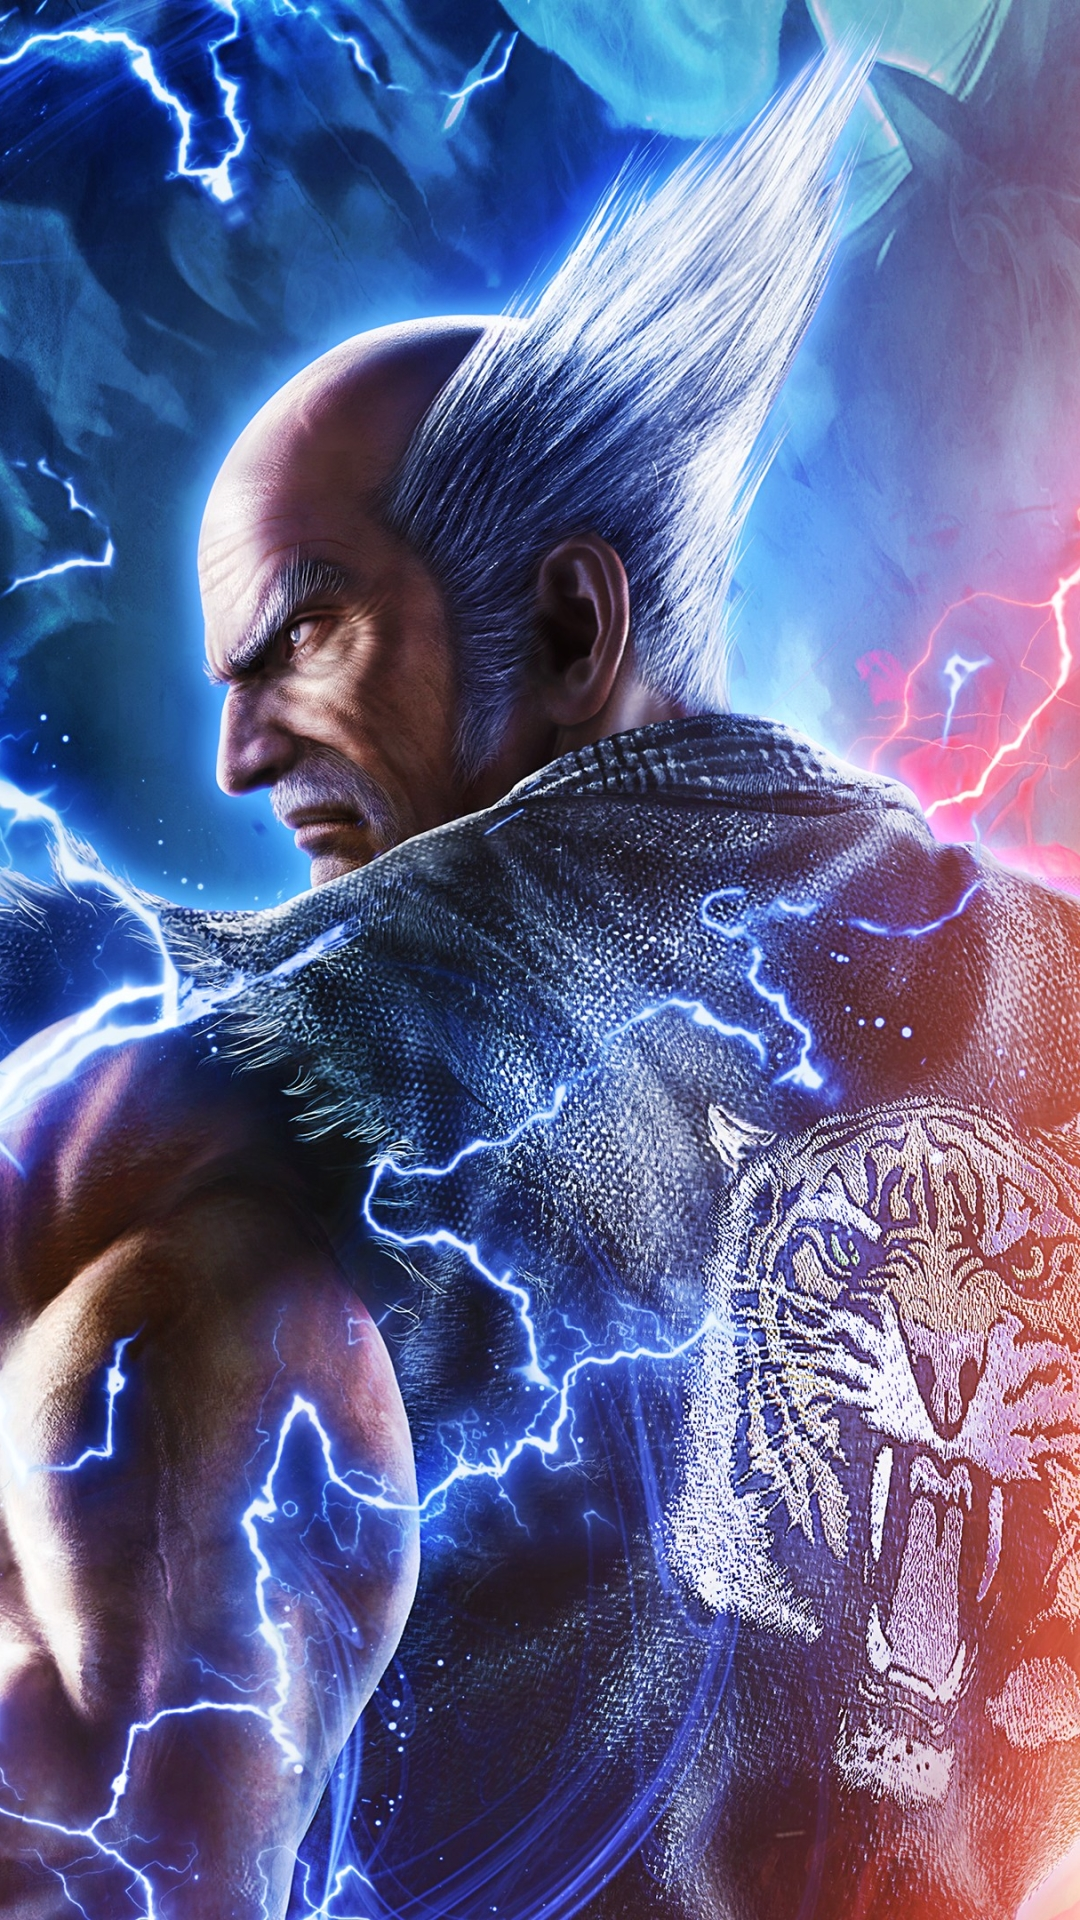 Video Game Tekken 7 1080x1920 Wallpaper Id 686660 Mobile Abyss